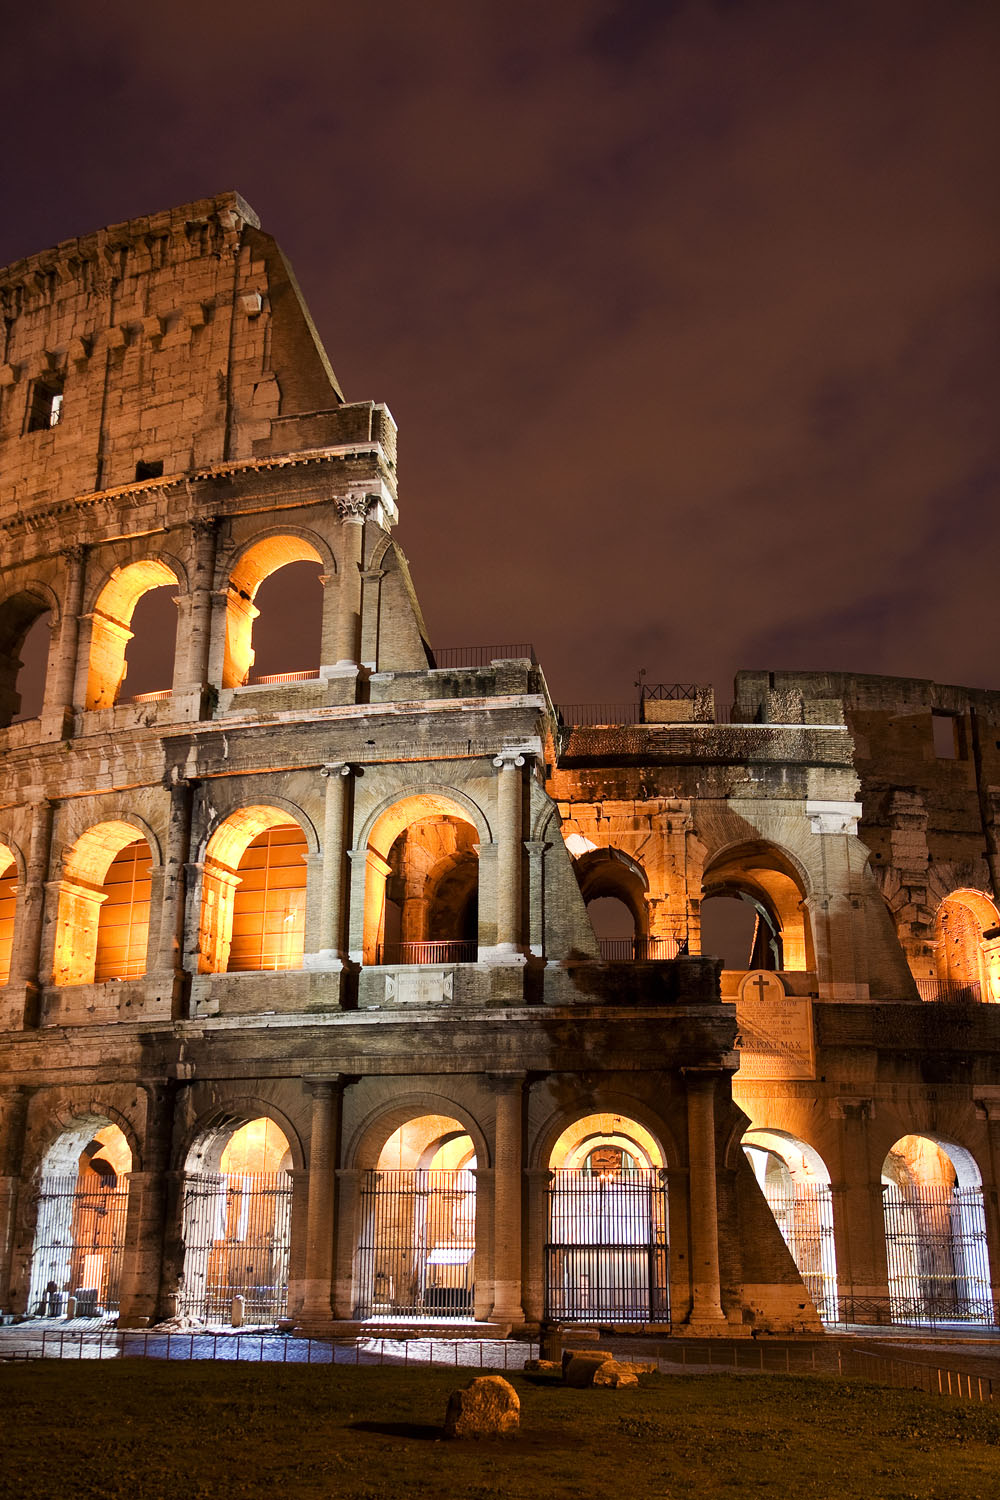 Colosseum - Rome, Italy